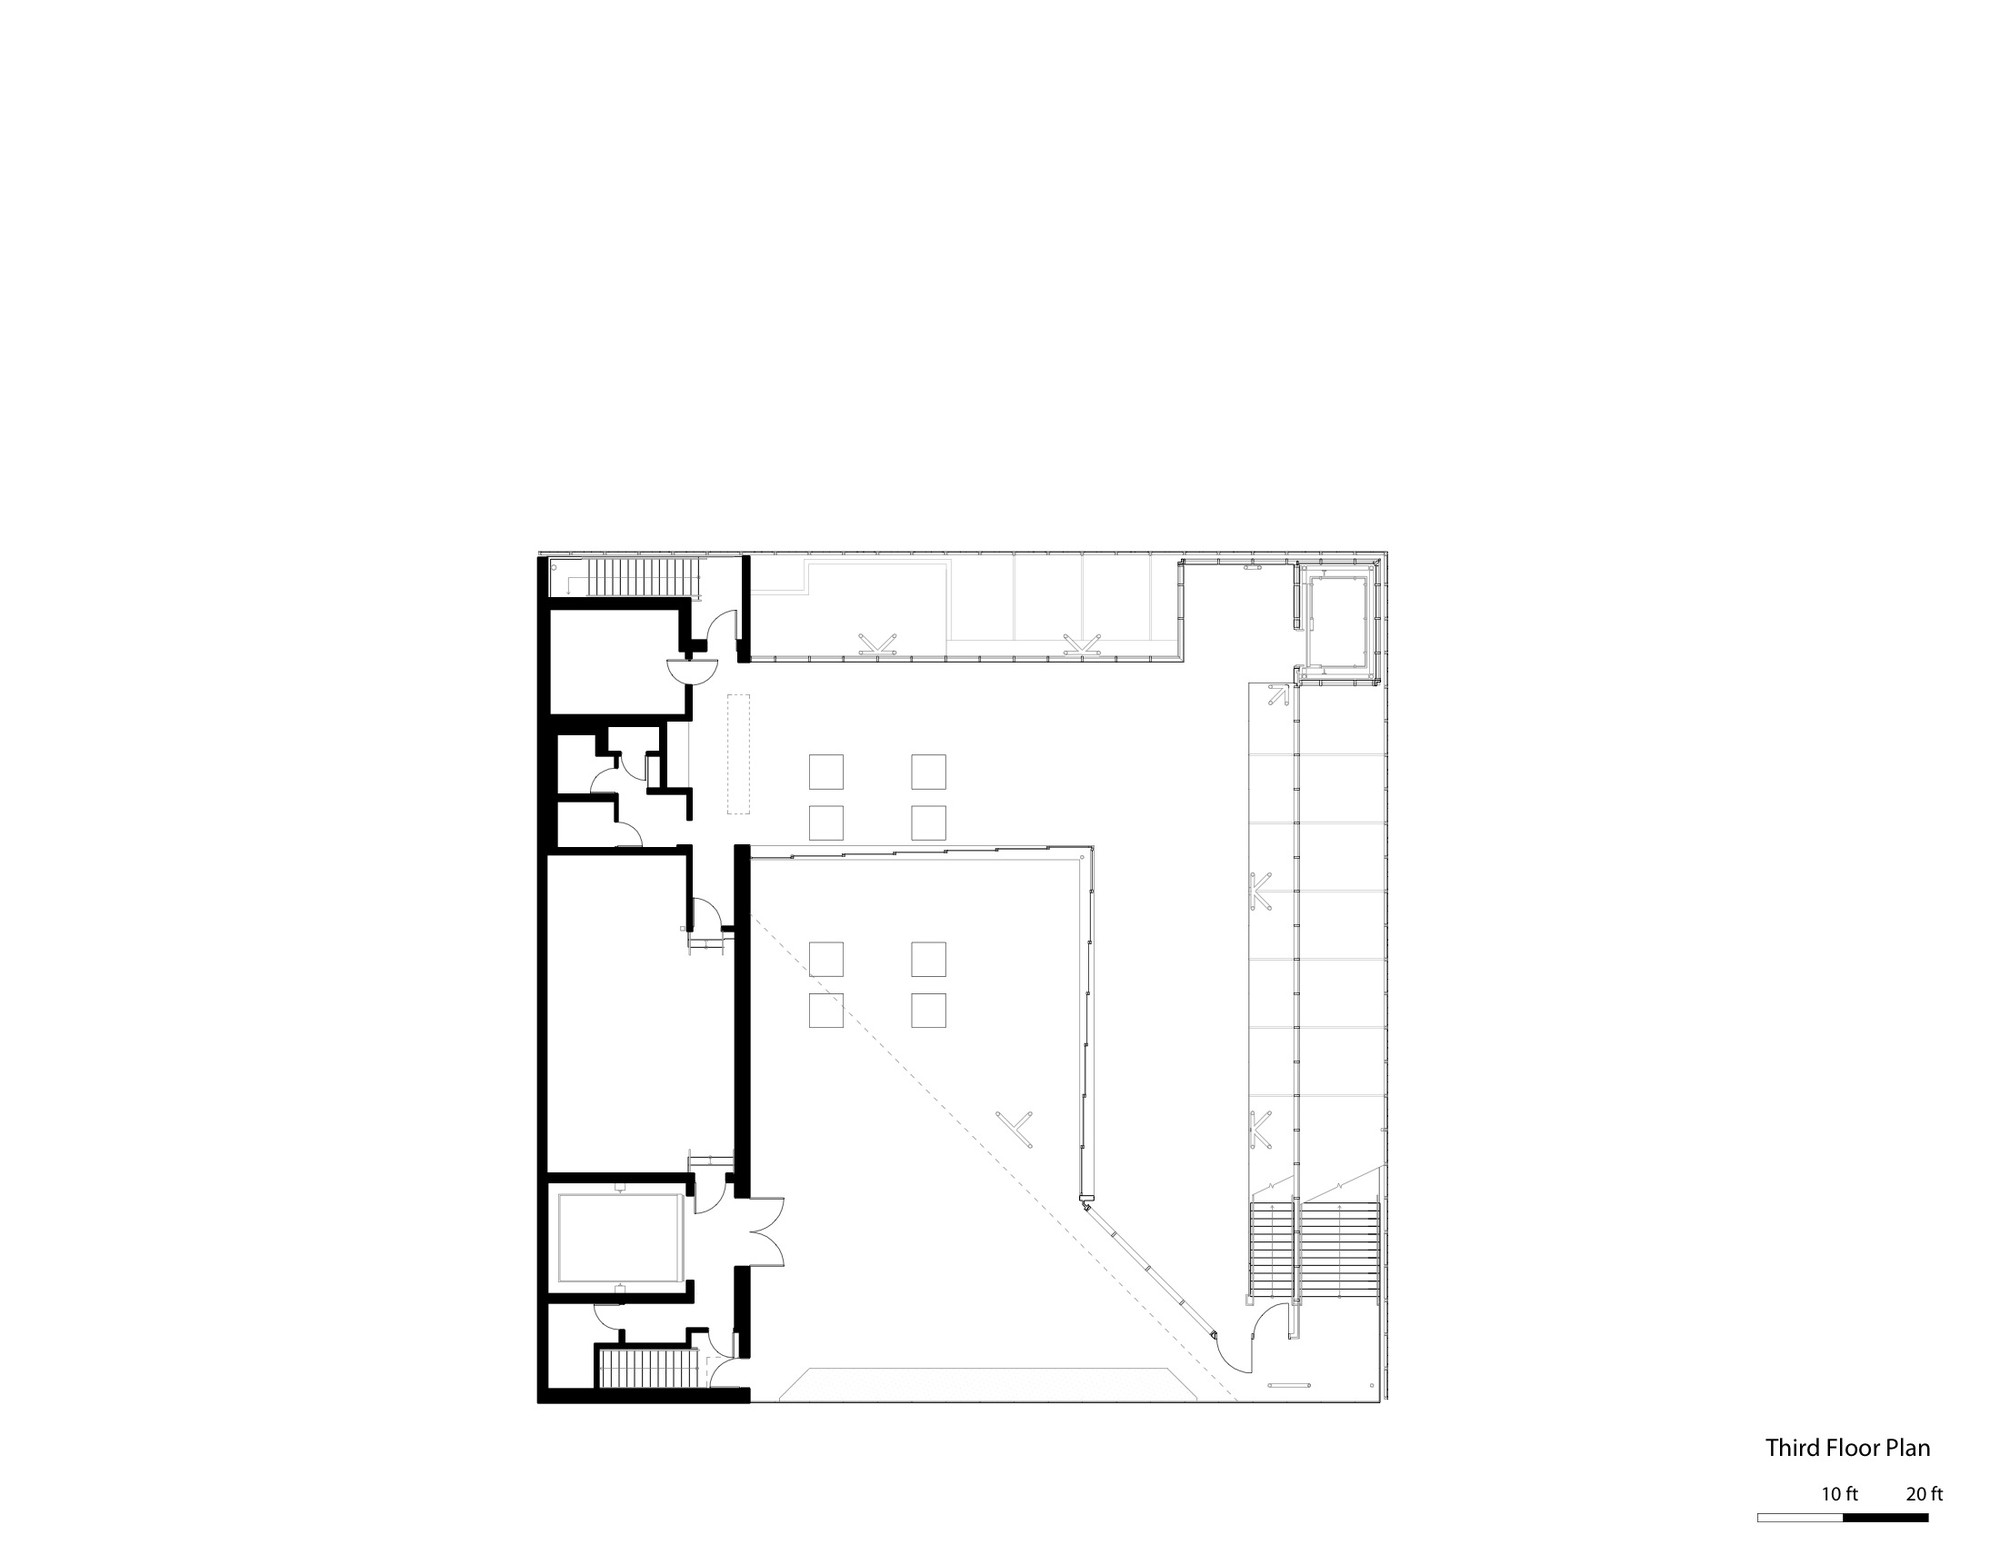 Architecture Blueprint Of A House Vector 5048091 moreover 2337986 also Richard Meier Retrospective To Debut In Mexico City furthermore Pyramid And The Eye 9641073 together with Illustration Stock Mouche Domestique De Dessin De Main Image53111023. on art house plans